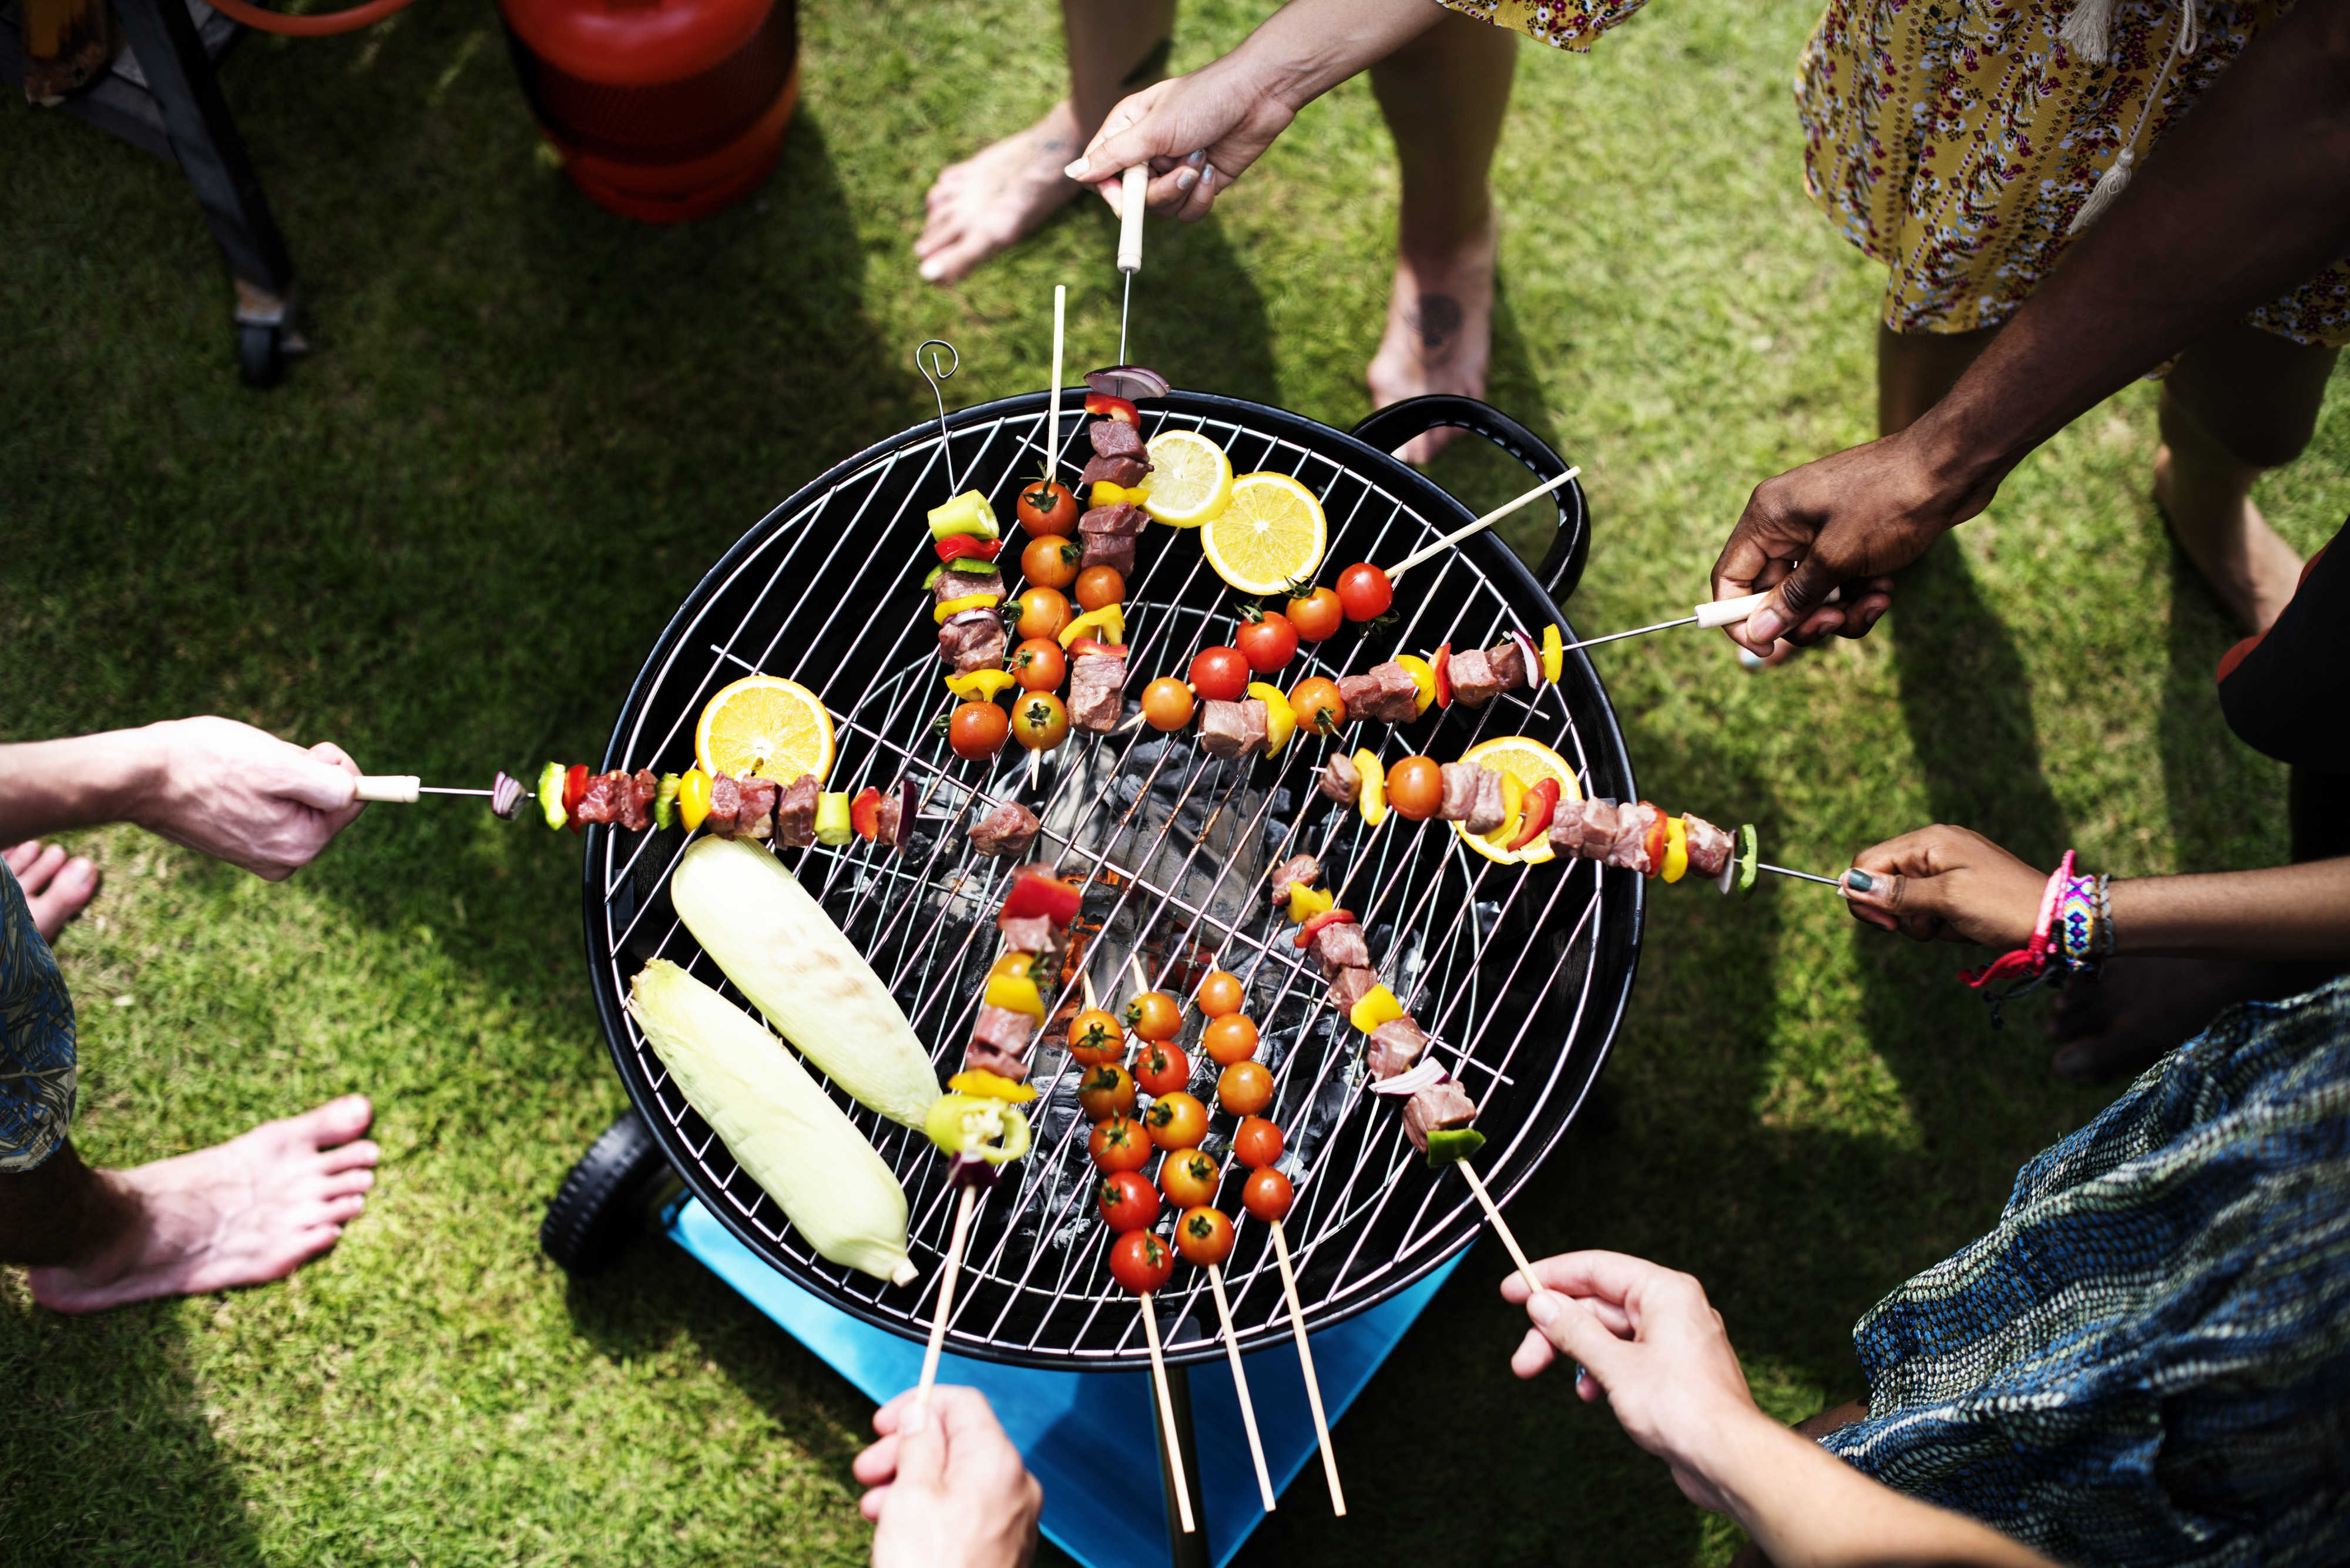 people having a barbecue party